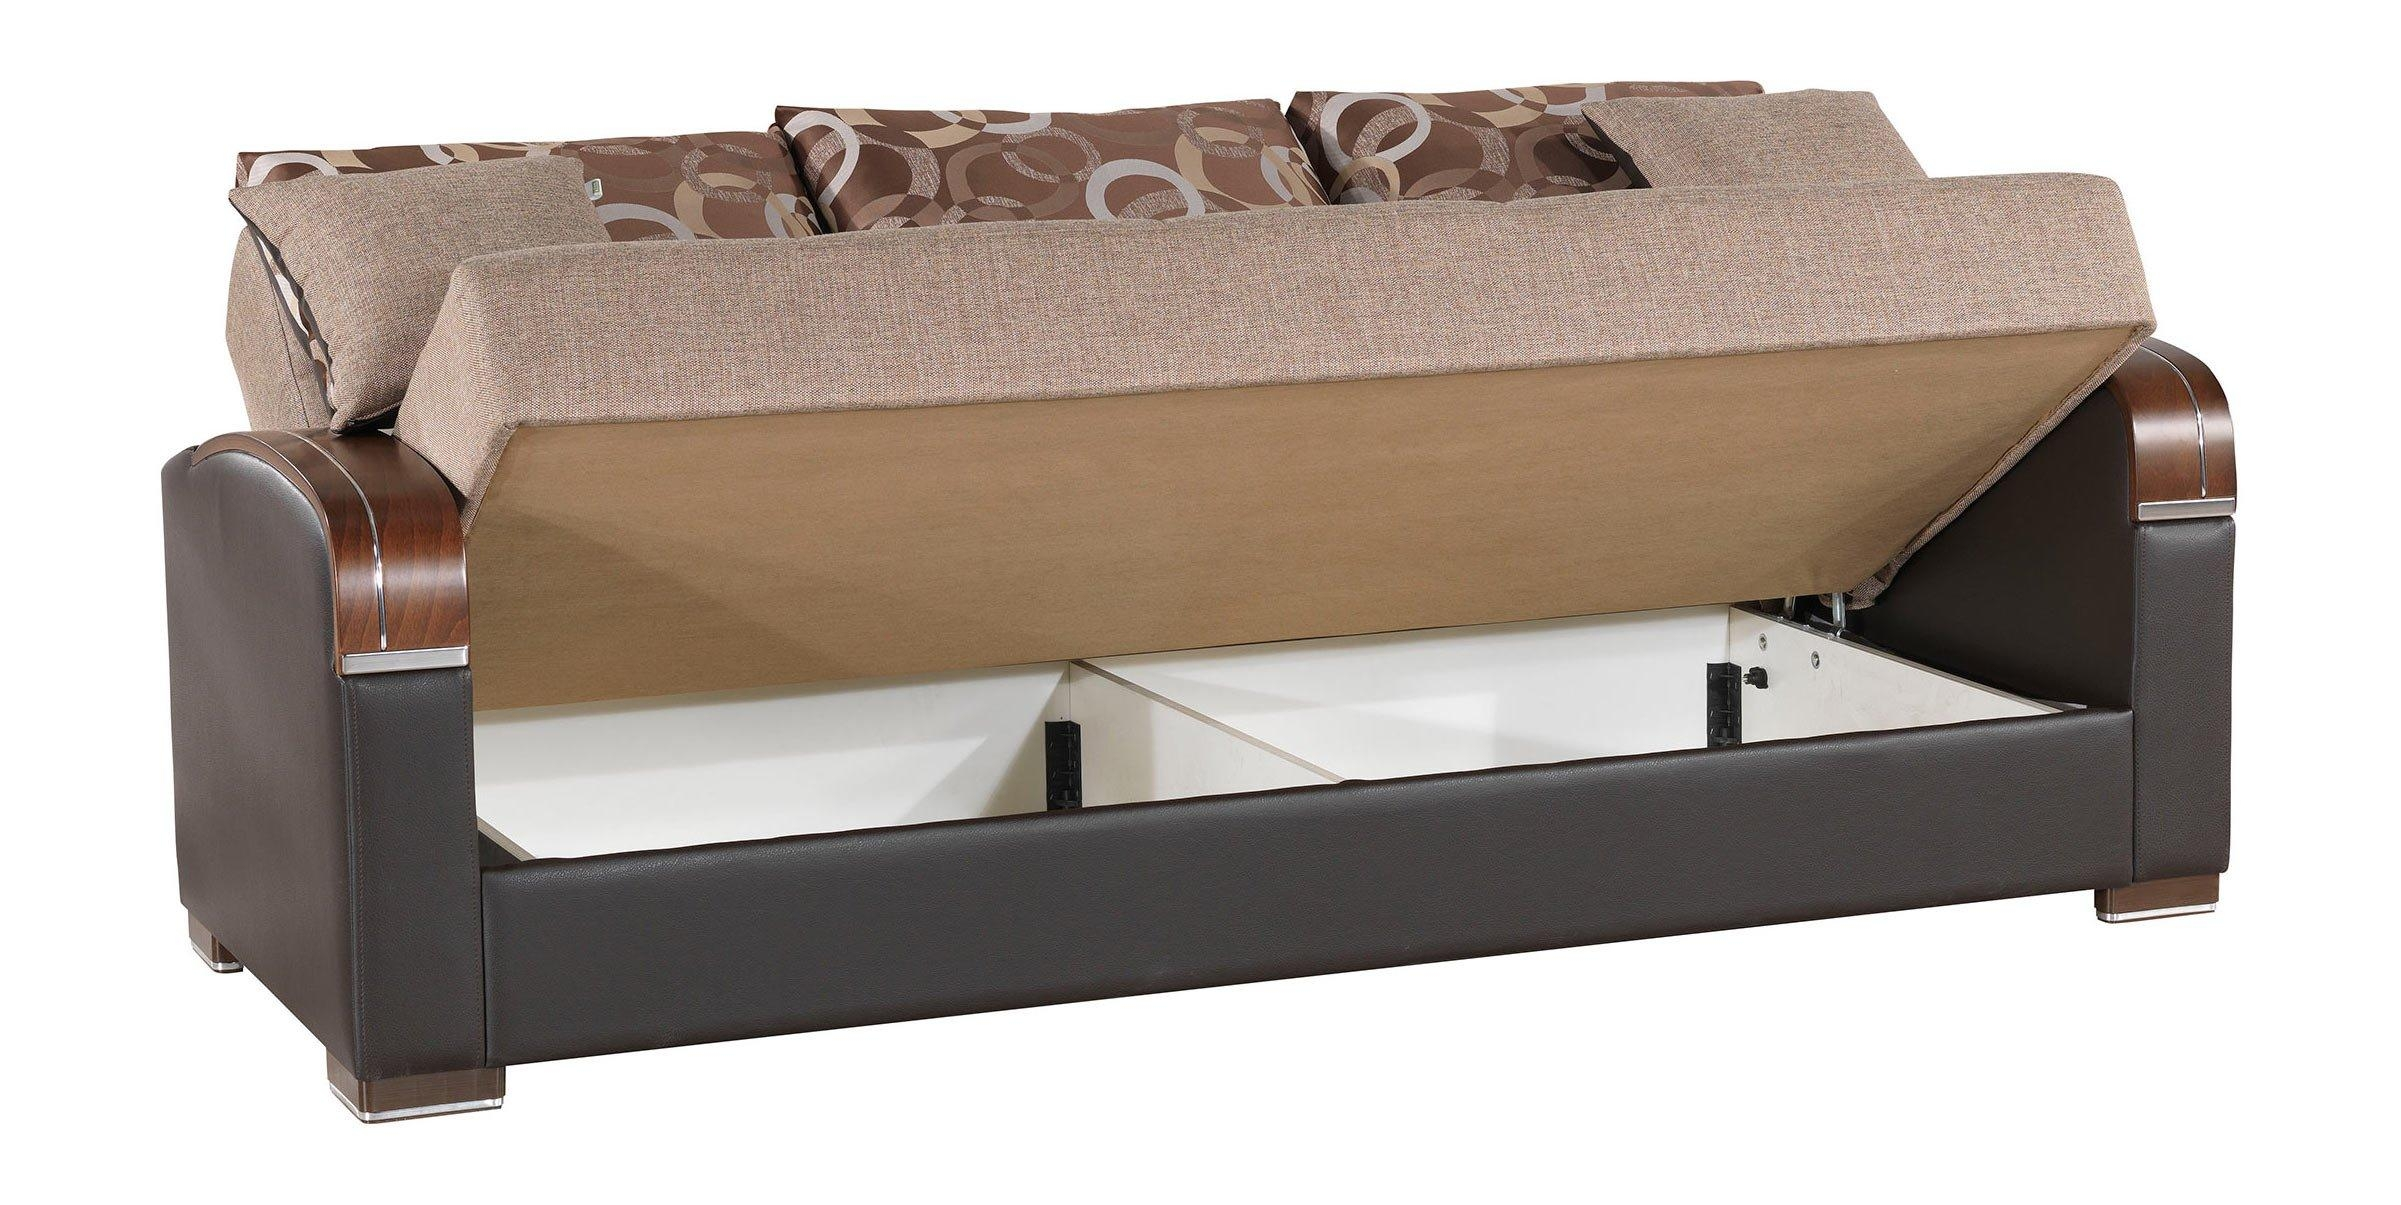 Sofas Center : 37 Striking Castro Convertible Sofa Bed Pictures With Regard To Castro Convertible Sofas (View 6 of 20)